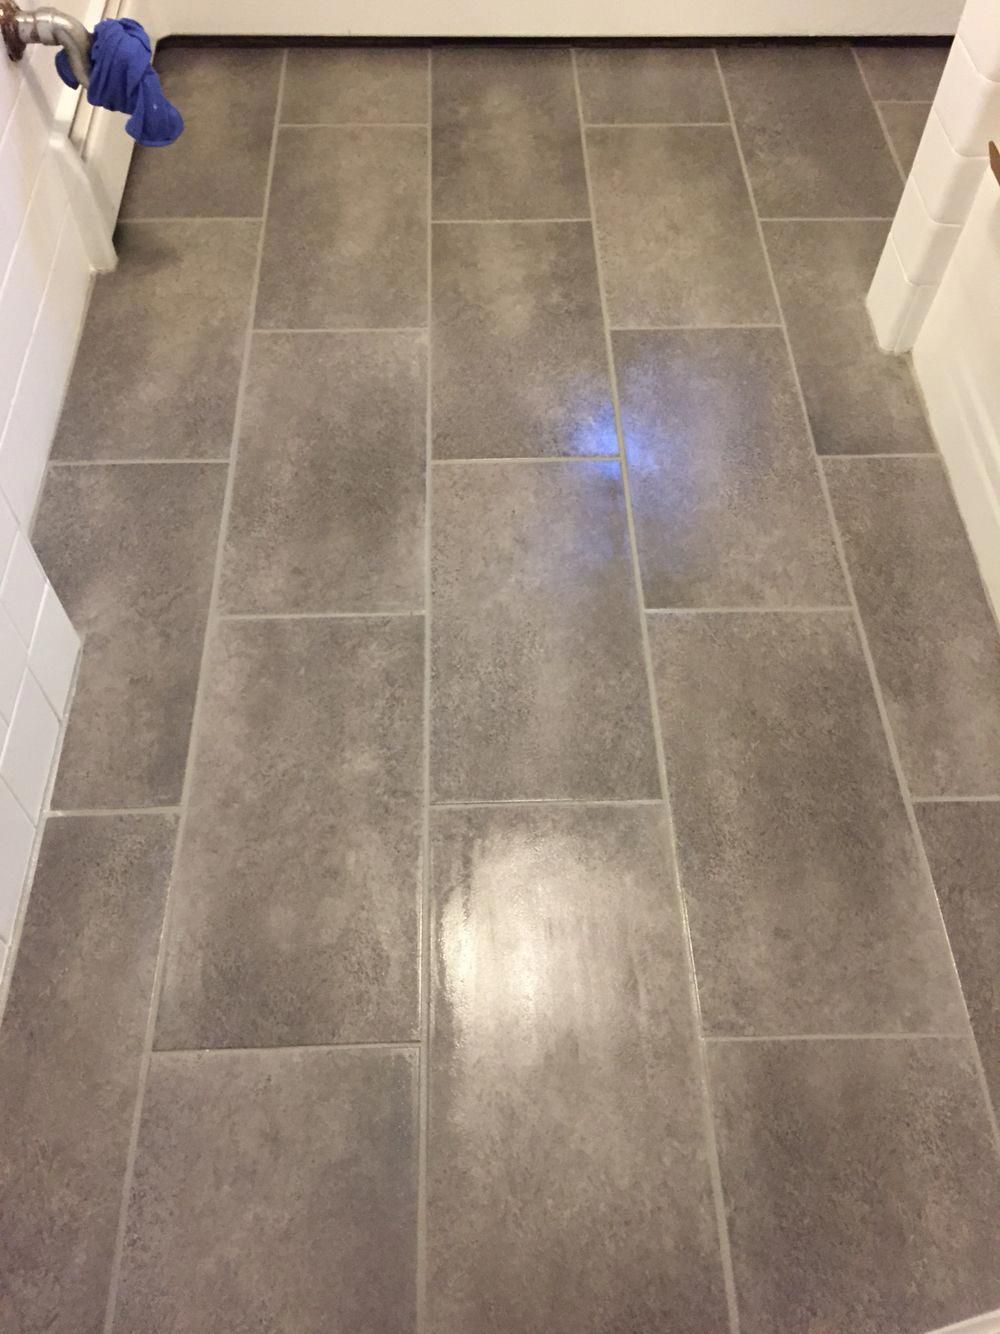 Home Depot Trafficmaster Groutable Vinyl Tile Coastal Grey Flooringideastransition Haus Dekor Wohnung Design